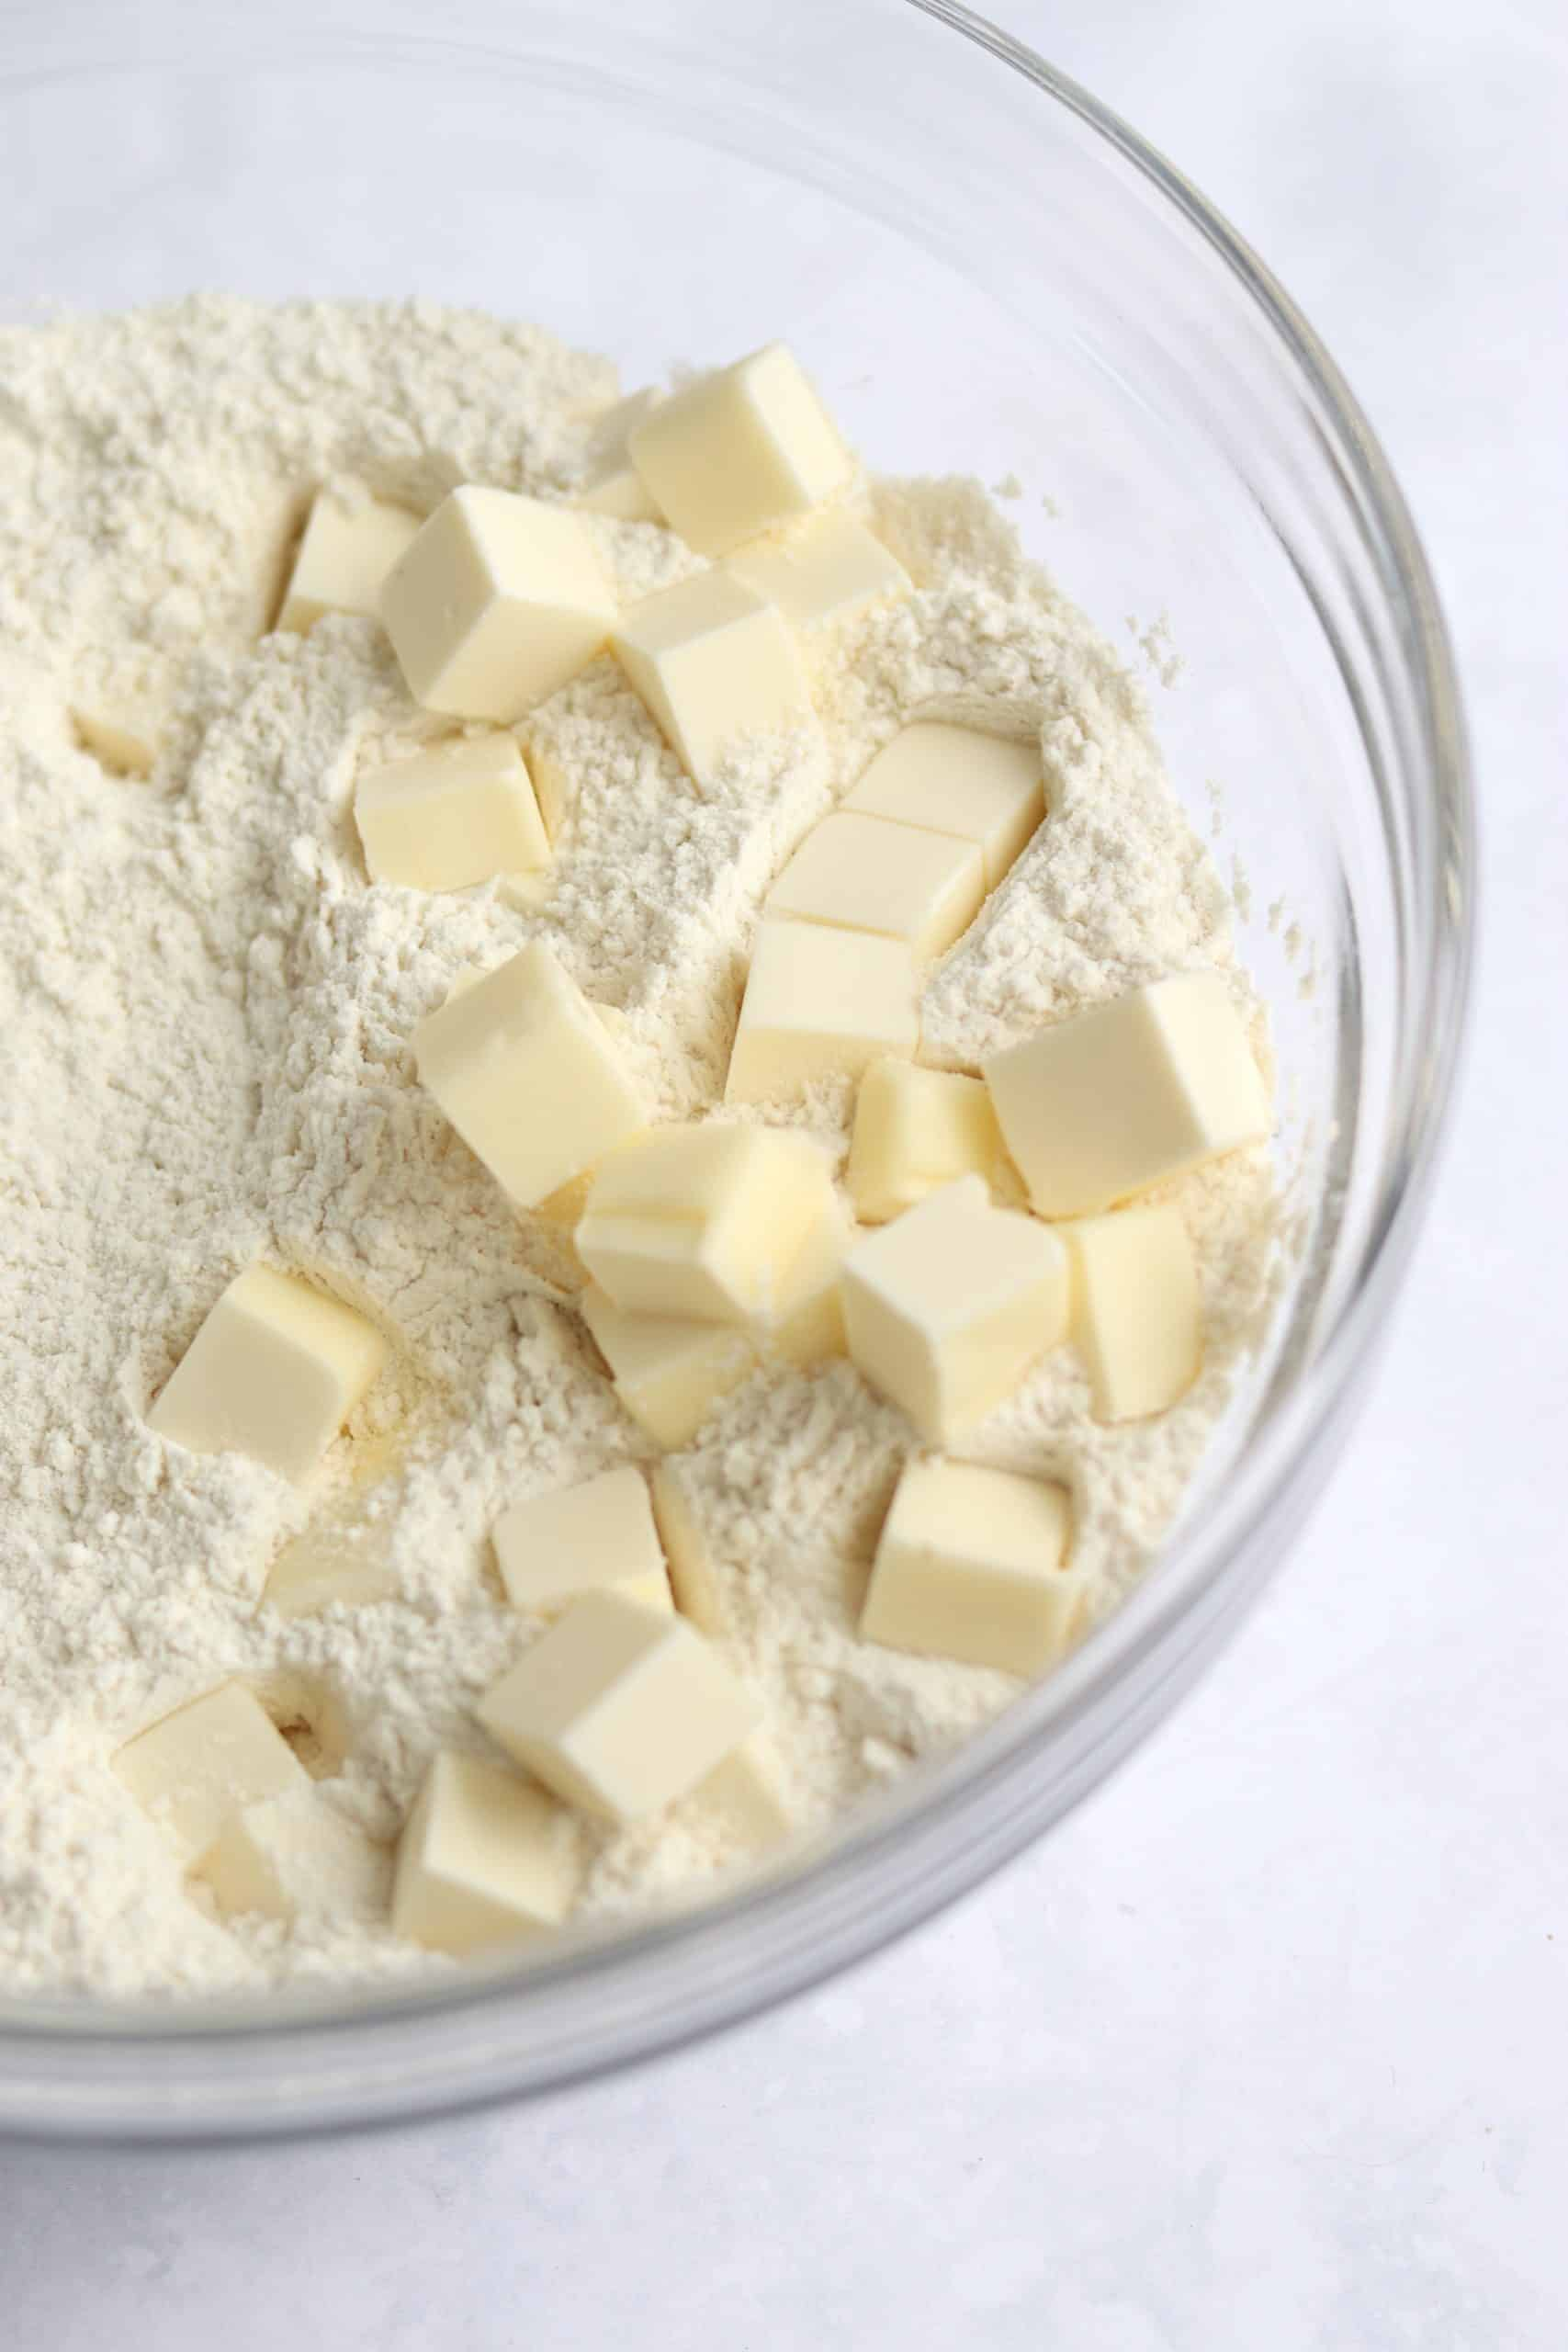 Cubed butter added to dry ingredients.